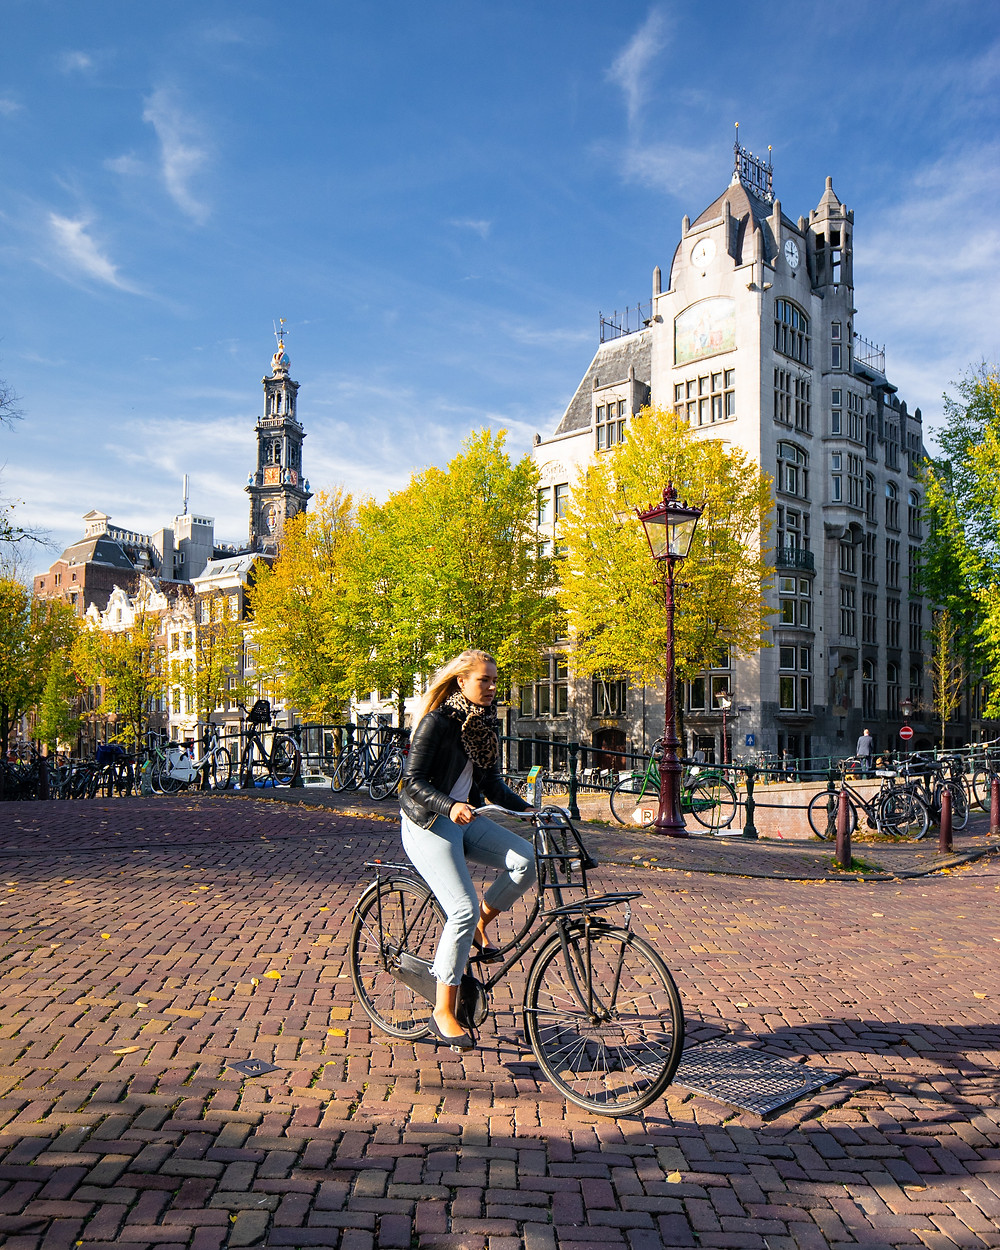 woman riding a bike in a town square